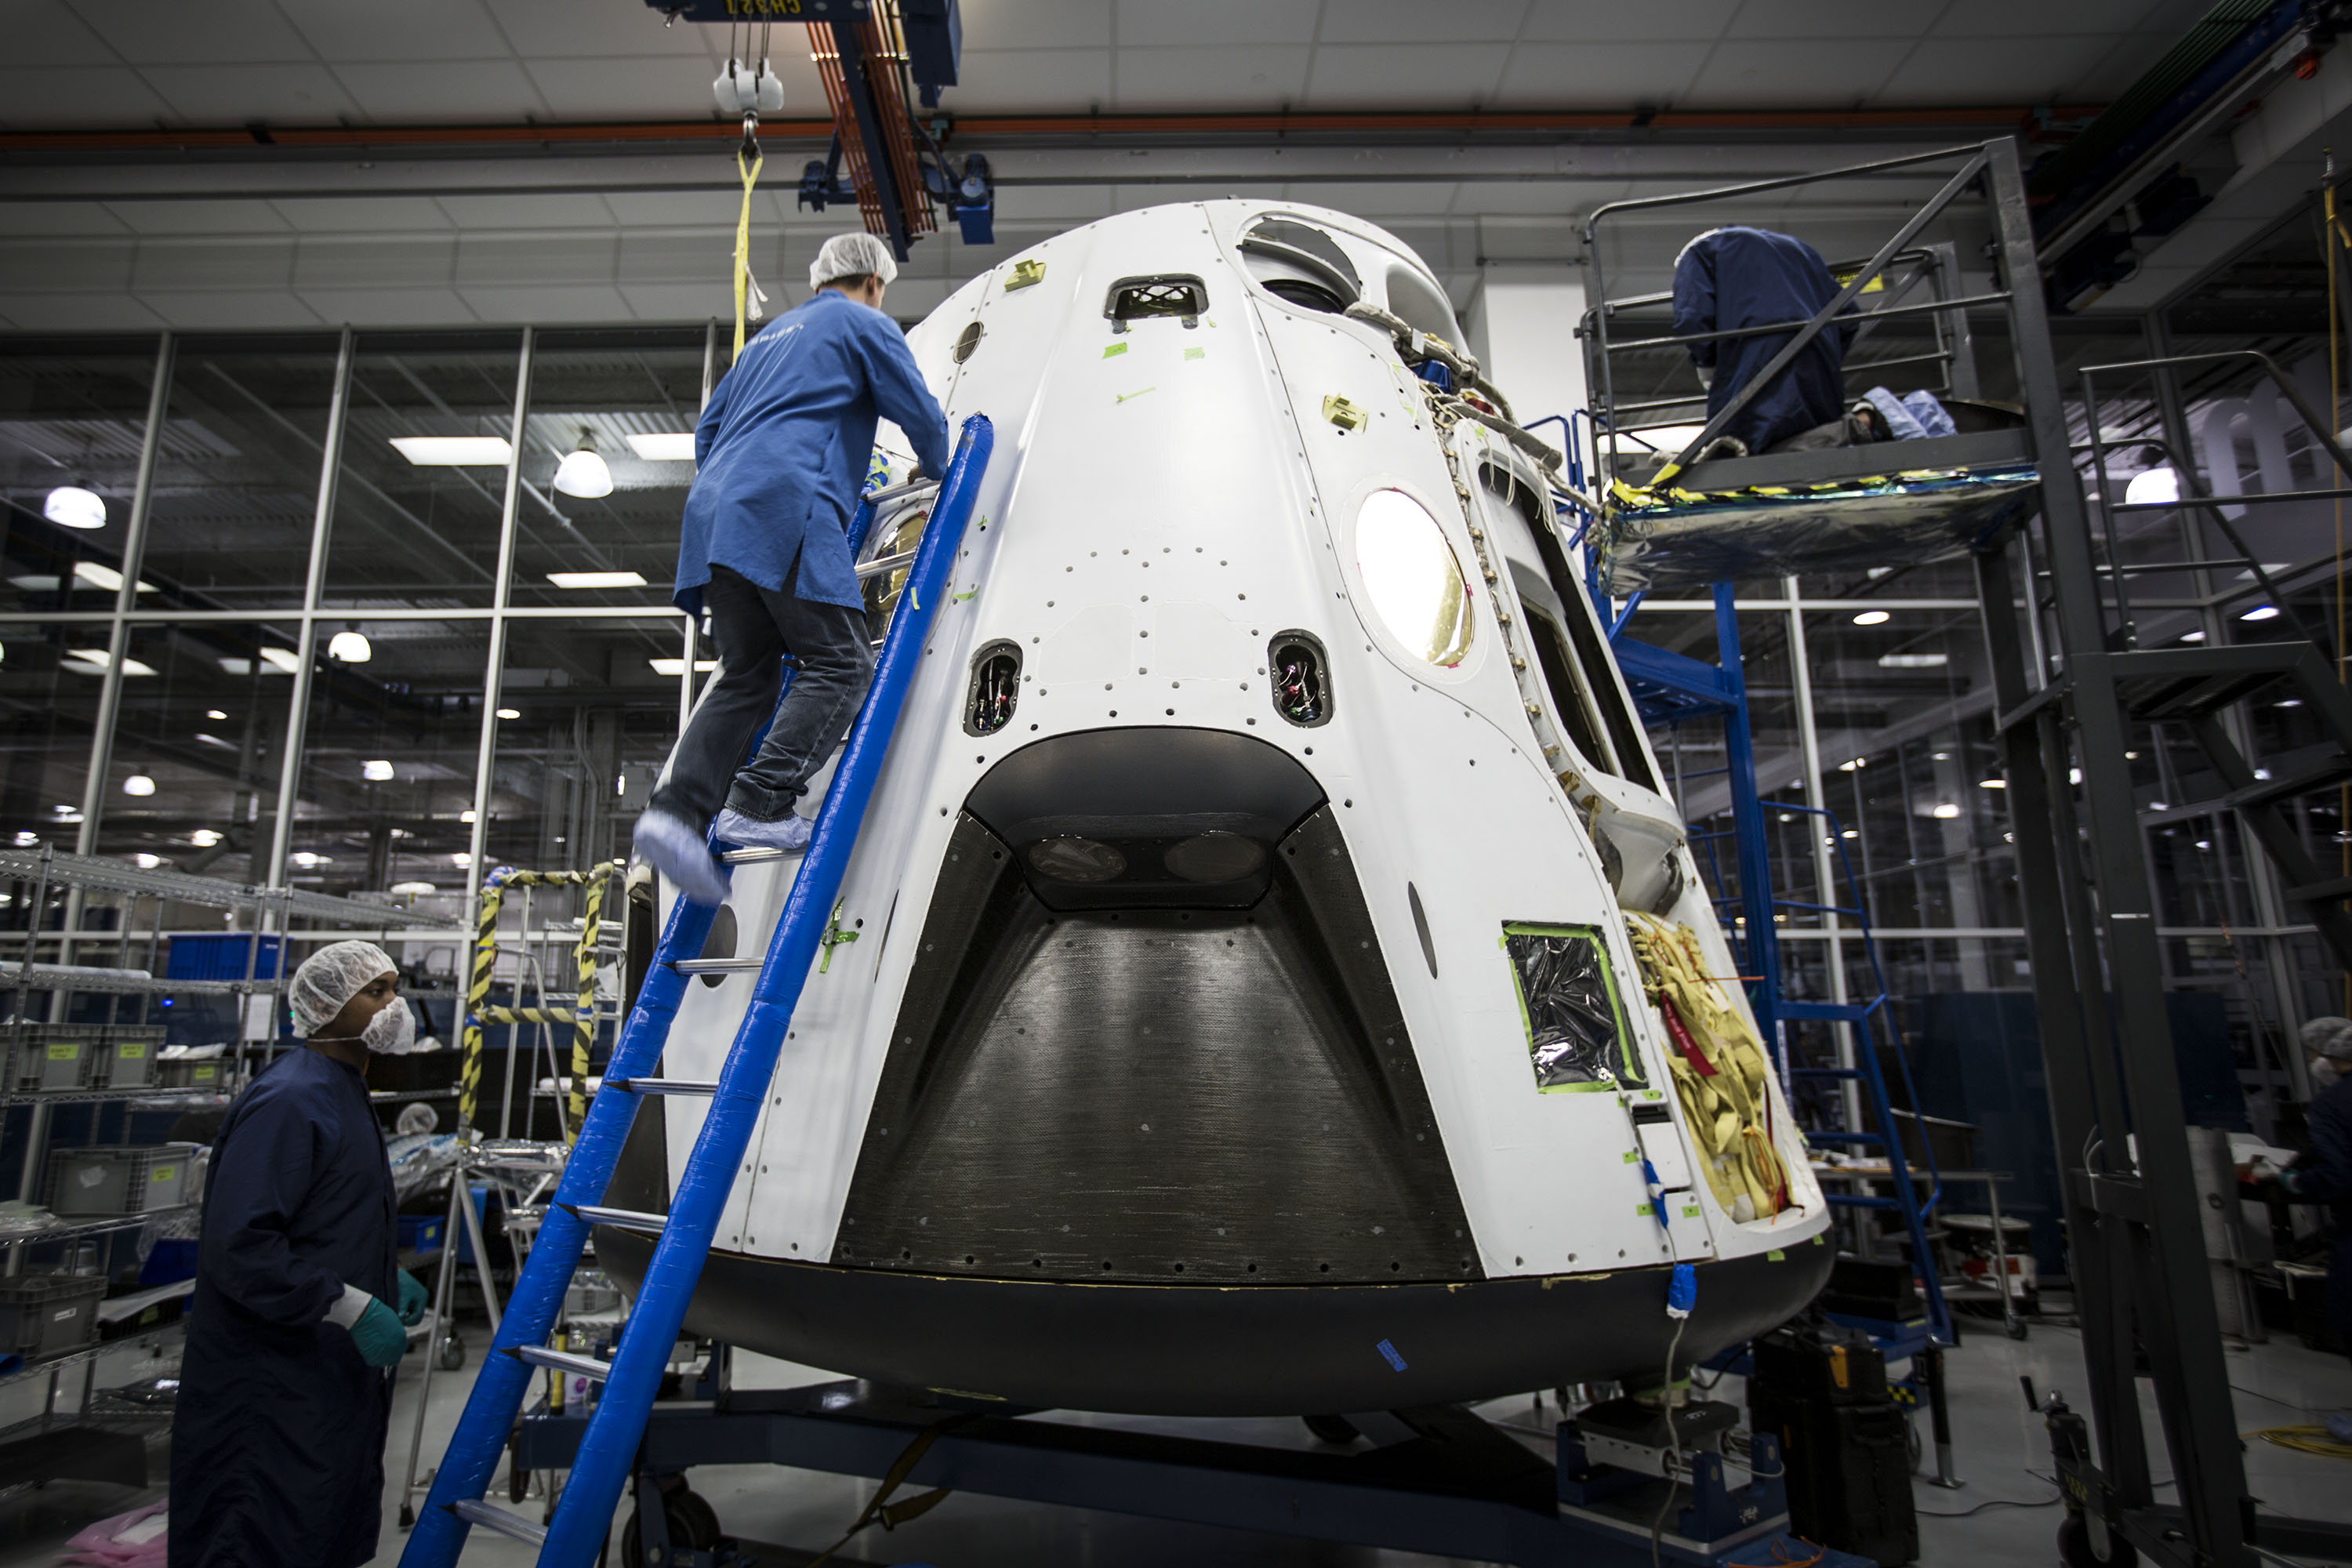 spacex dragon capsule inside facility with technician climbing ladder to top and second technician standing nearby